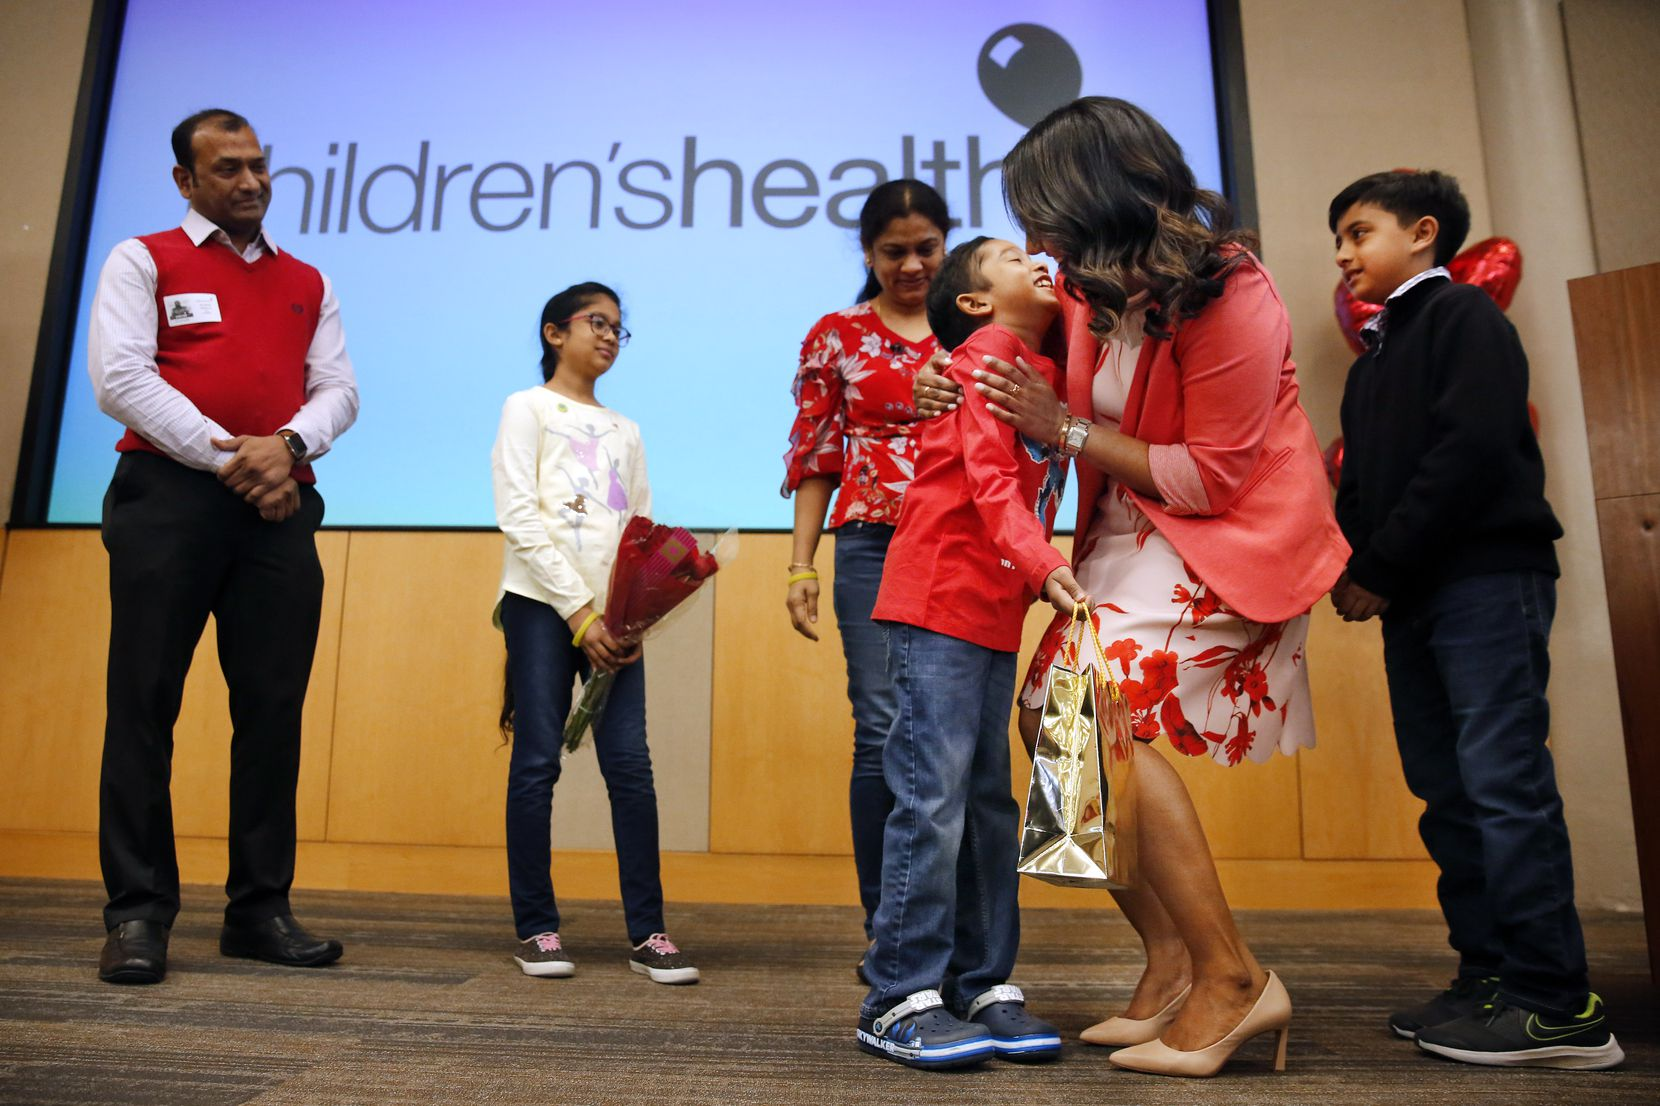 Bone marrow recipient Akshaj Nagilla gives his donor, Dr. Prasanthi Ganesa (second from right), a hug as they meet for the first time at Children's Medical Center Dallas, Friday, February 14, 2020.  (Tom Fox/The Dallas Morning News)